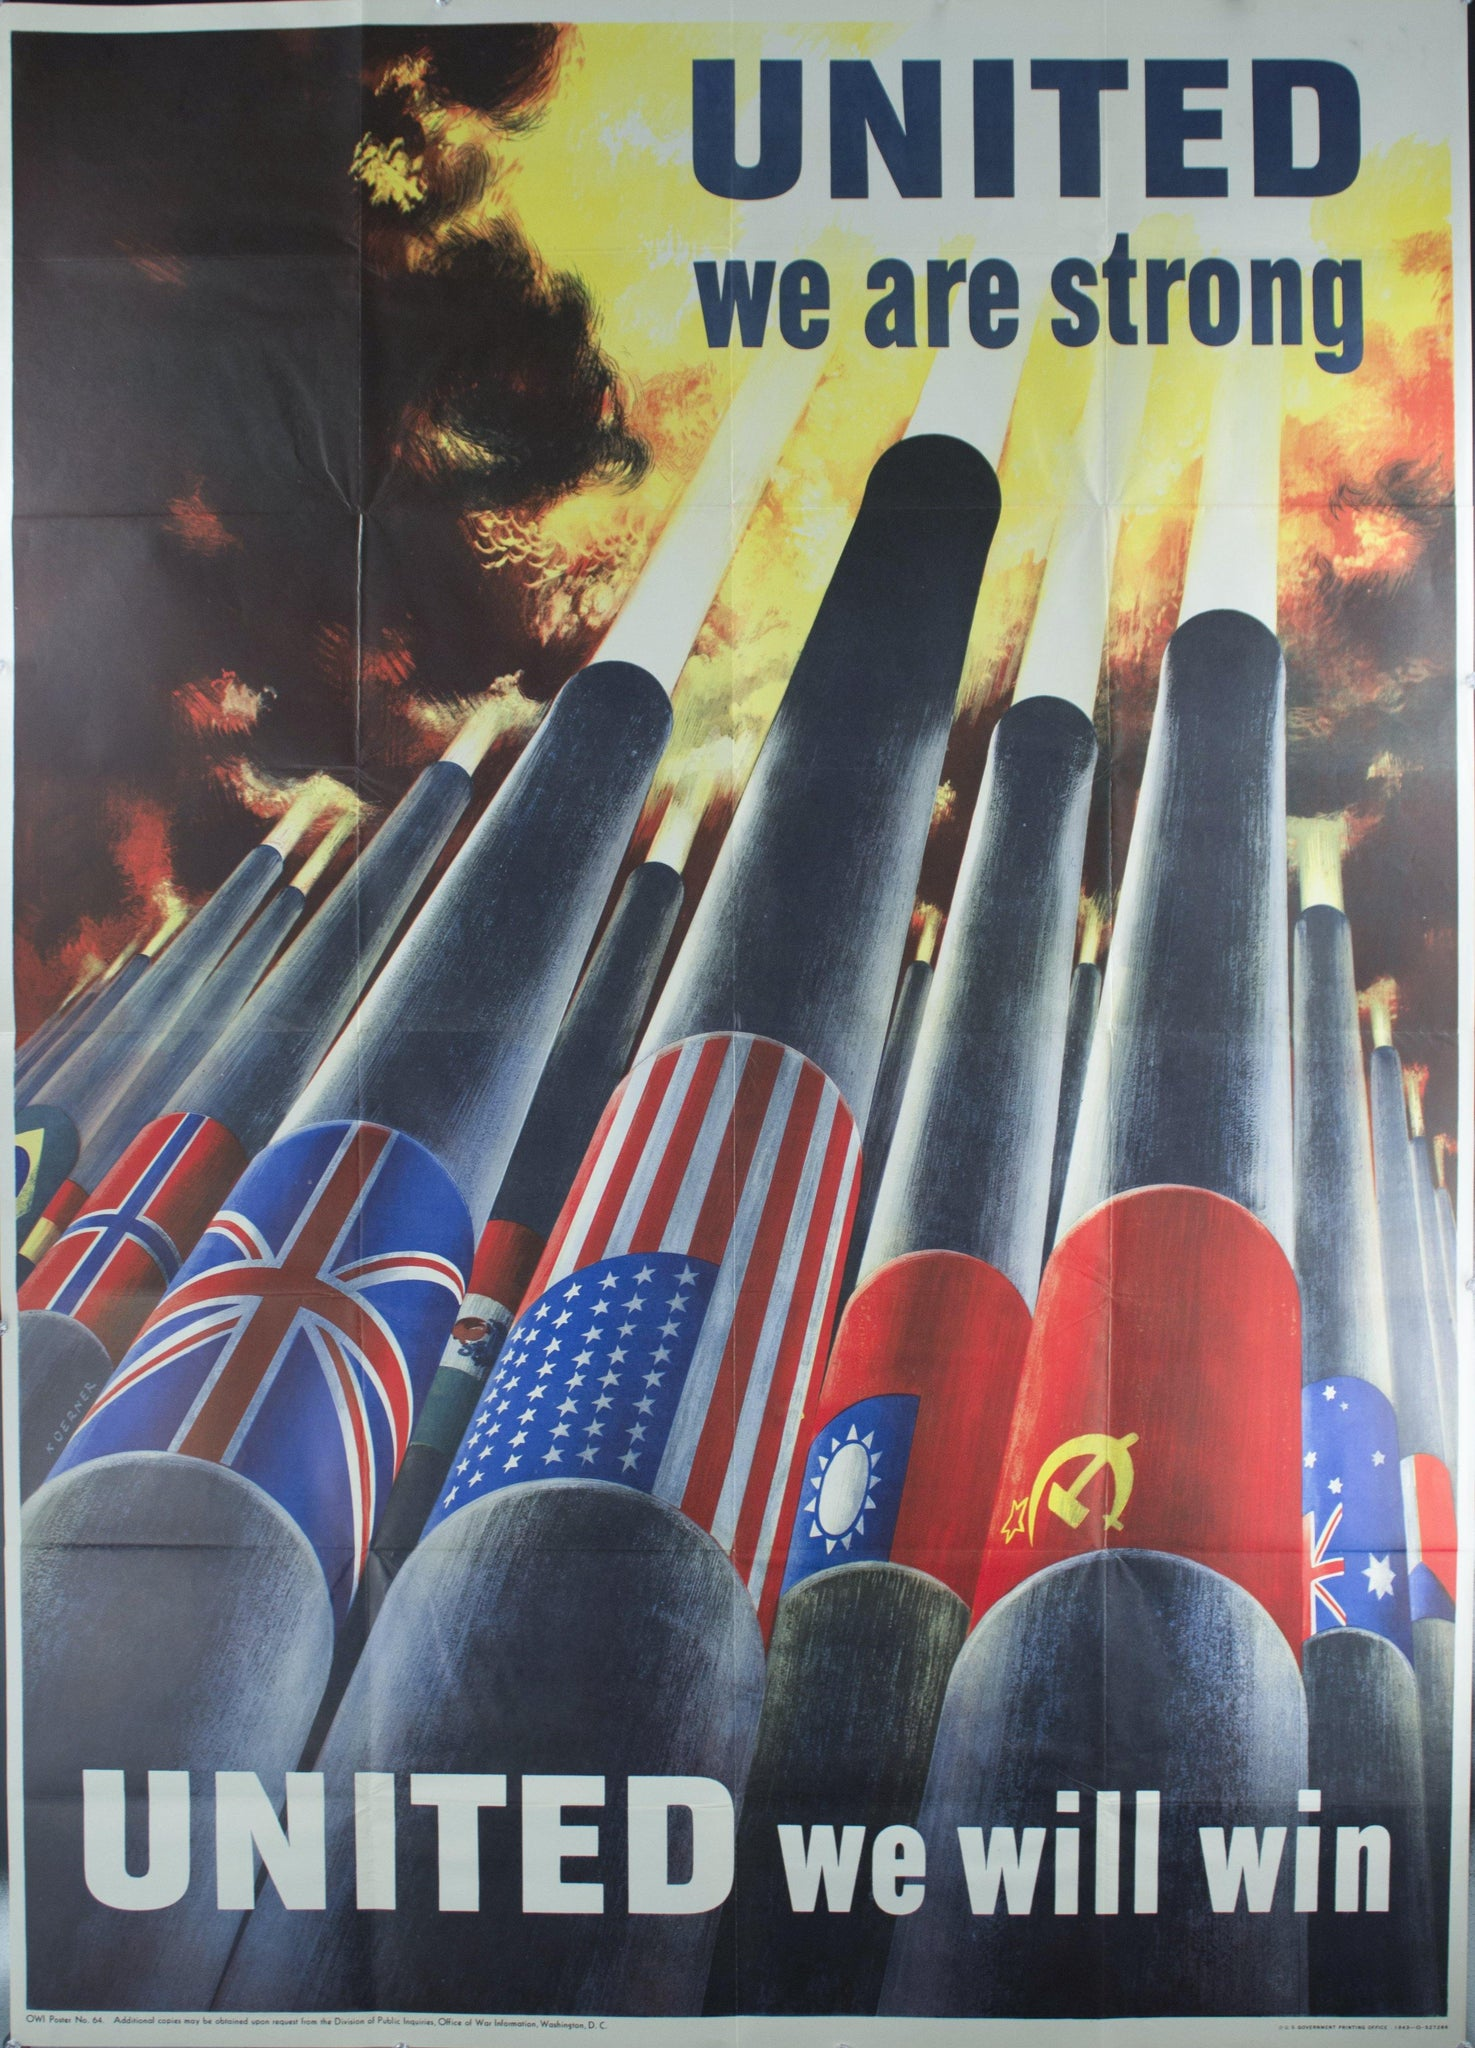 1943 United We Are Strong - United We Will Win